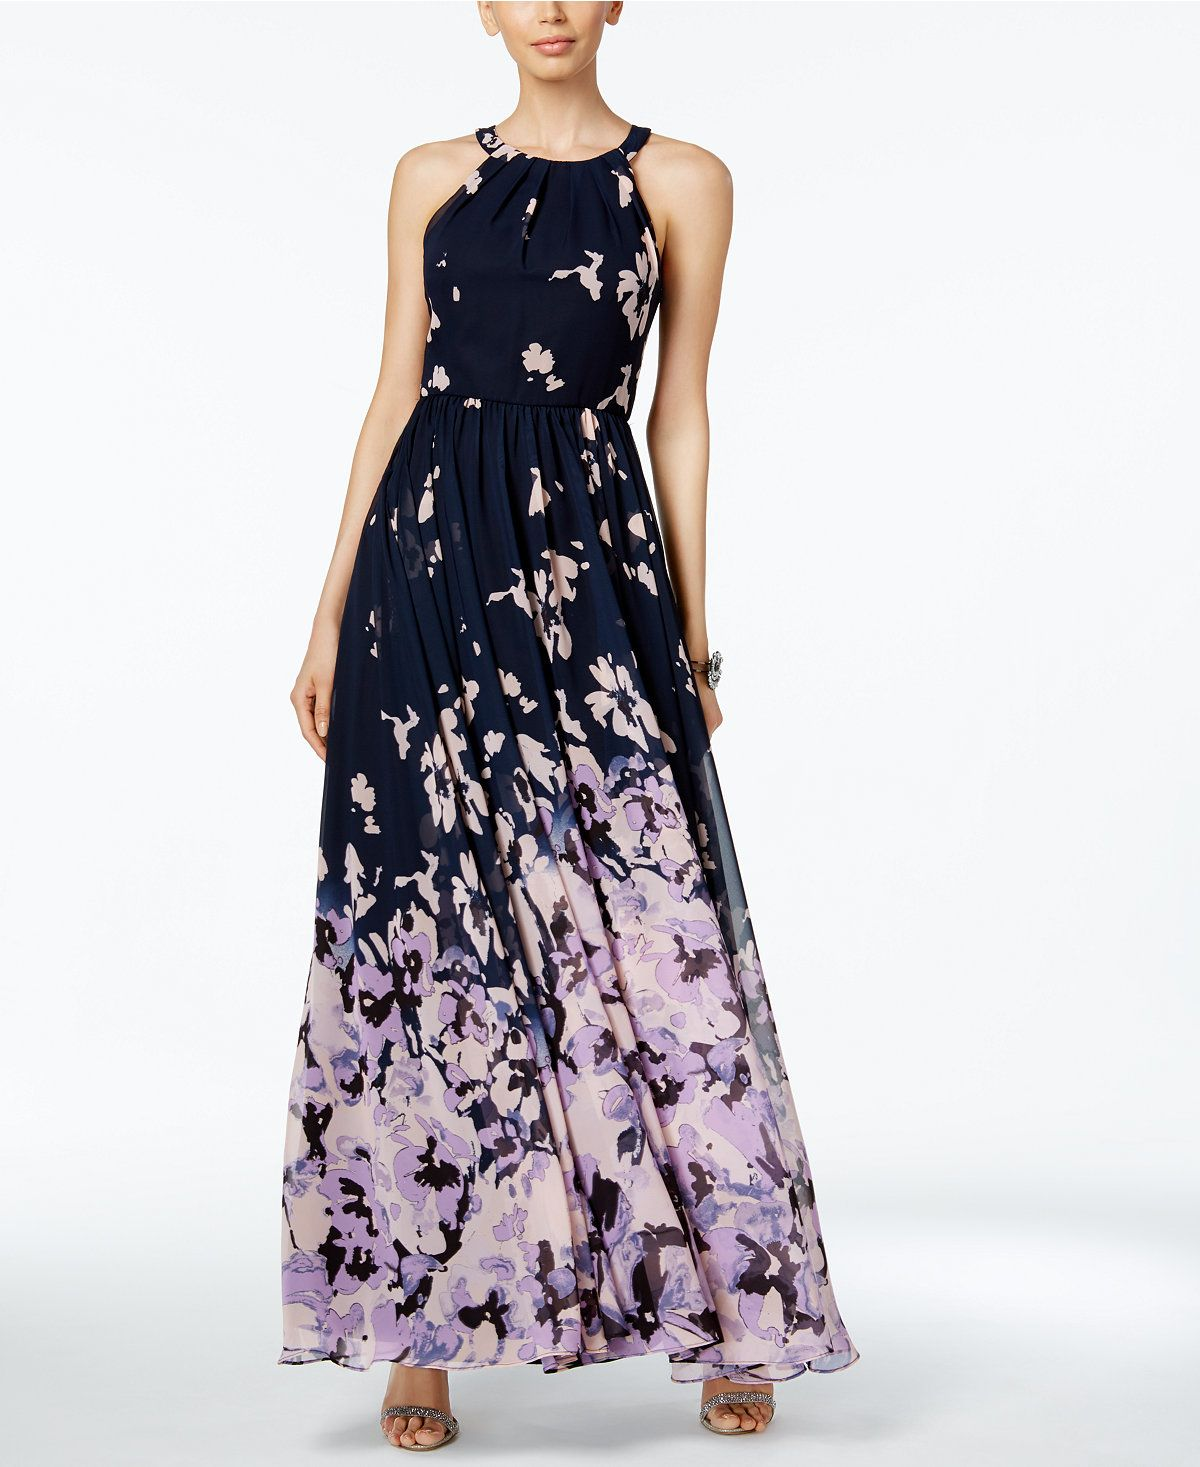 ad6169fcb90 Betsy   Adam Printed Halter Gown - Dresses To Wear To Wedding - SLP - Macy s